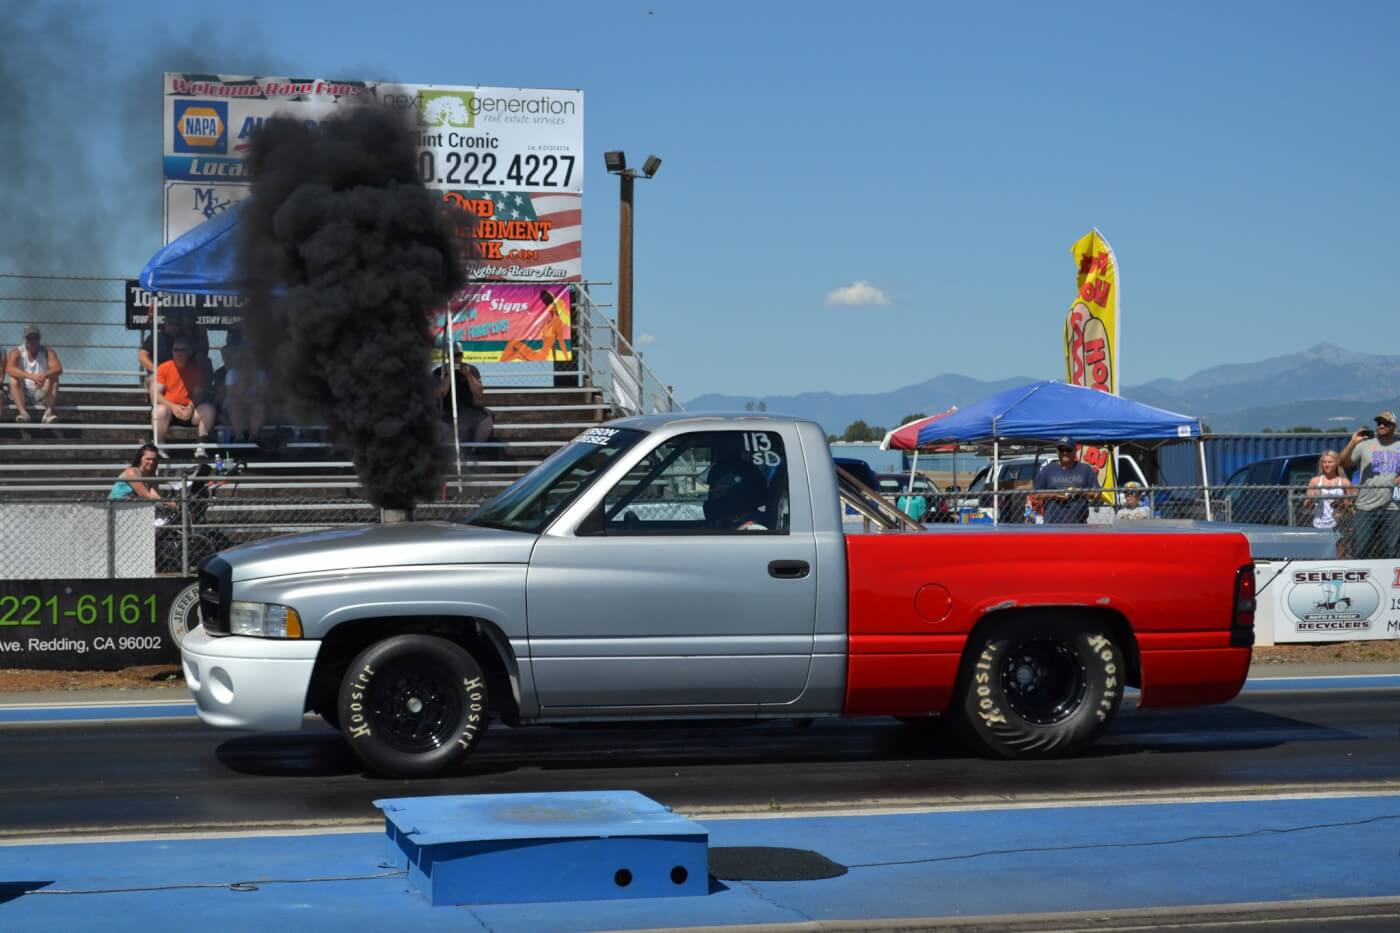 Diesels usually have a heck of a time making full passes the first time to the track, but Aaron Flournoy was able to dip into the 10-second zone the first time out, with his 12-valve powered drag truck. With a best of 10.87 at 126 mph with a spinning 1.74 60ft, look for this Ram to dip into the 9s soon.